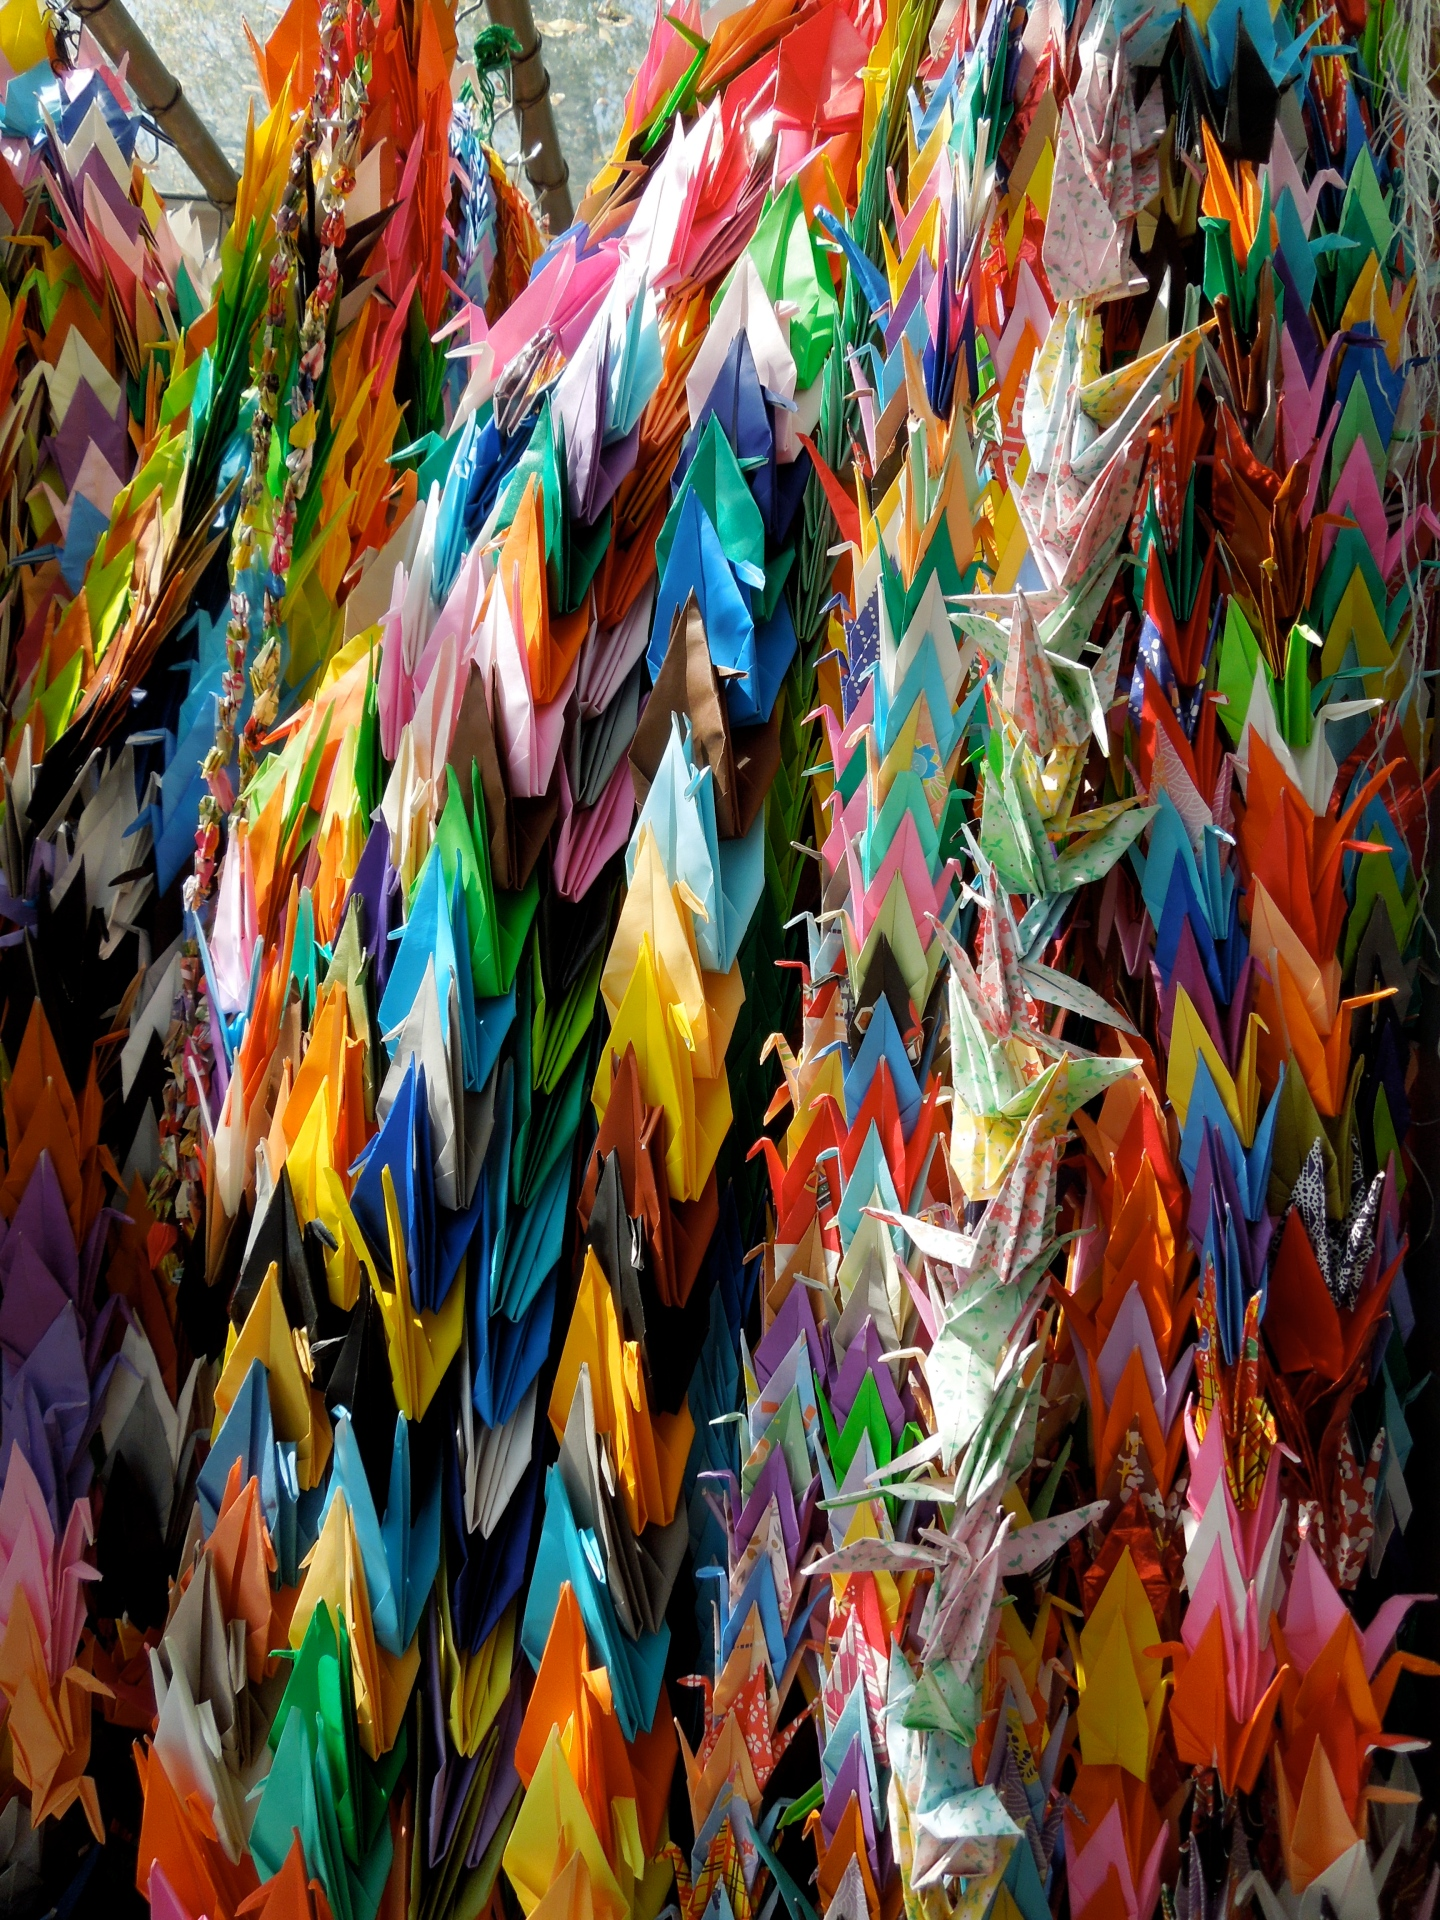 Paper cranes sent in from schools throughout the world.